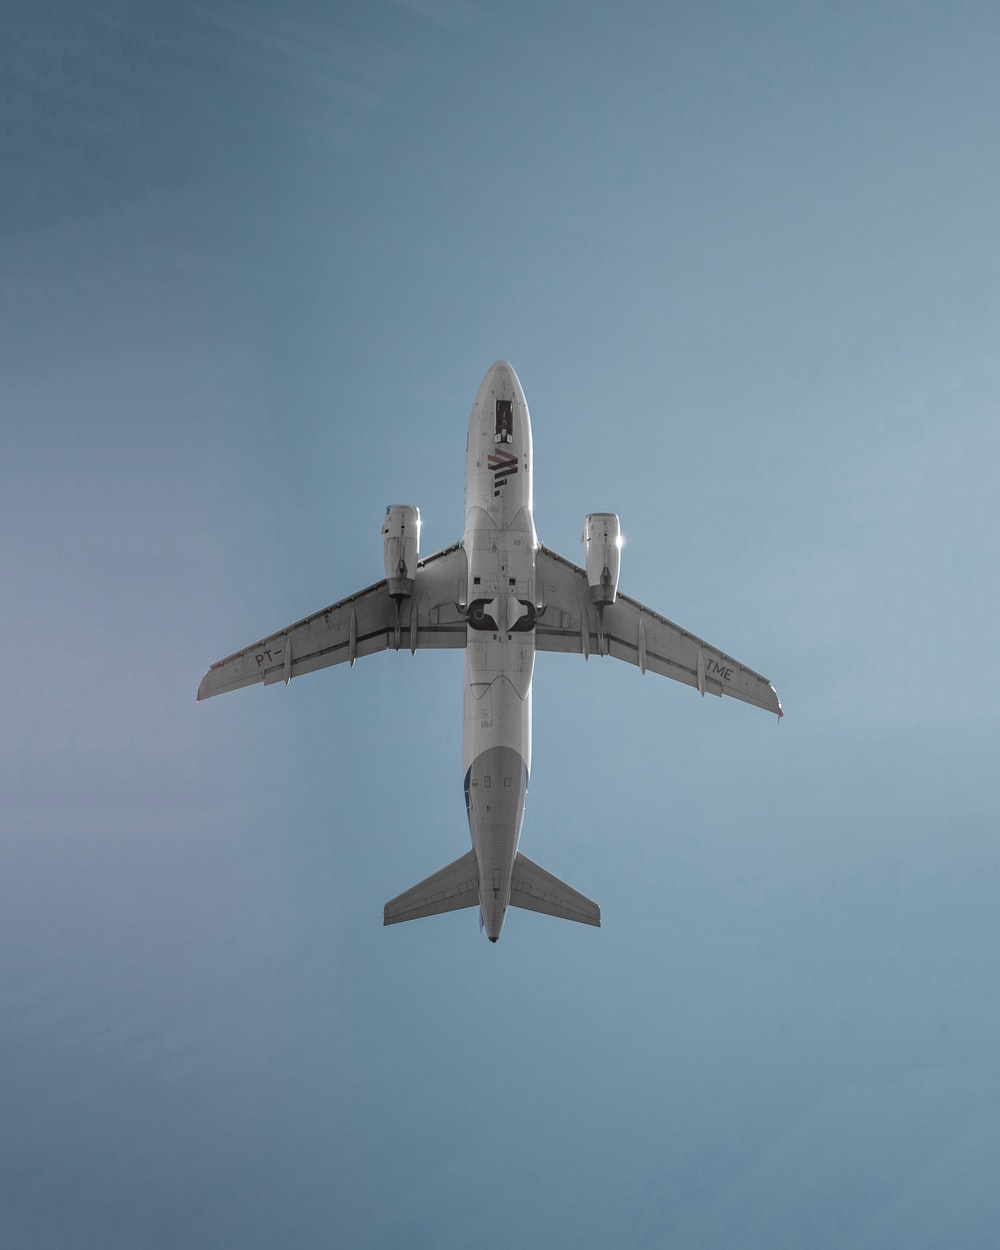 low angle photography of white airplane